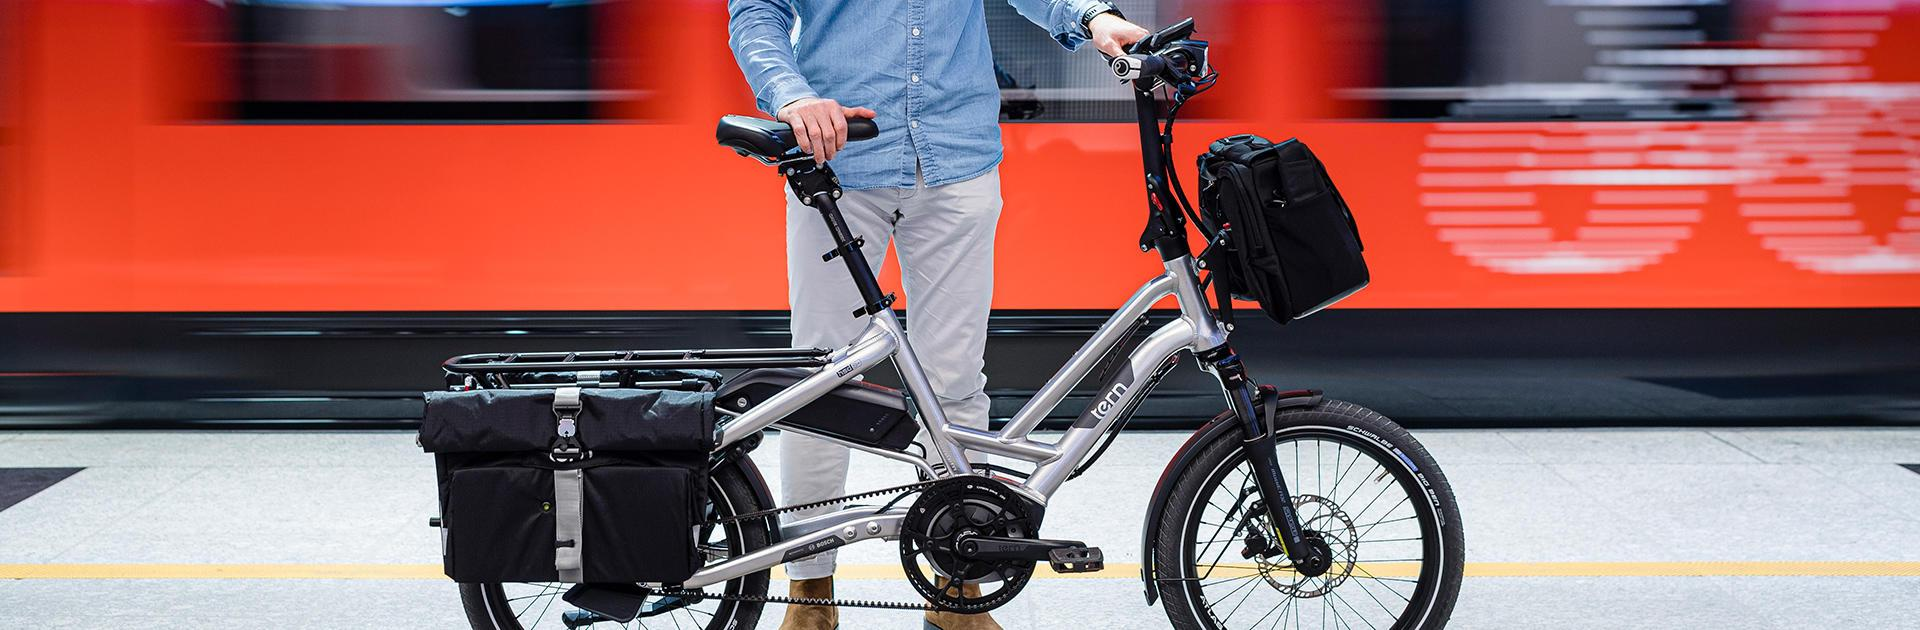 How Much Money Can You Save by Riding an E-Bike?